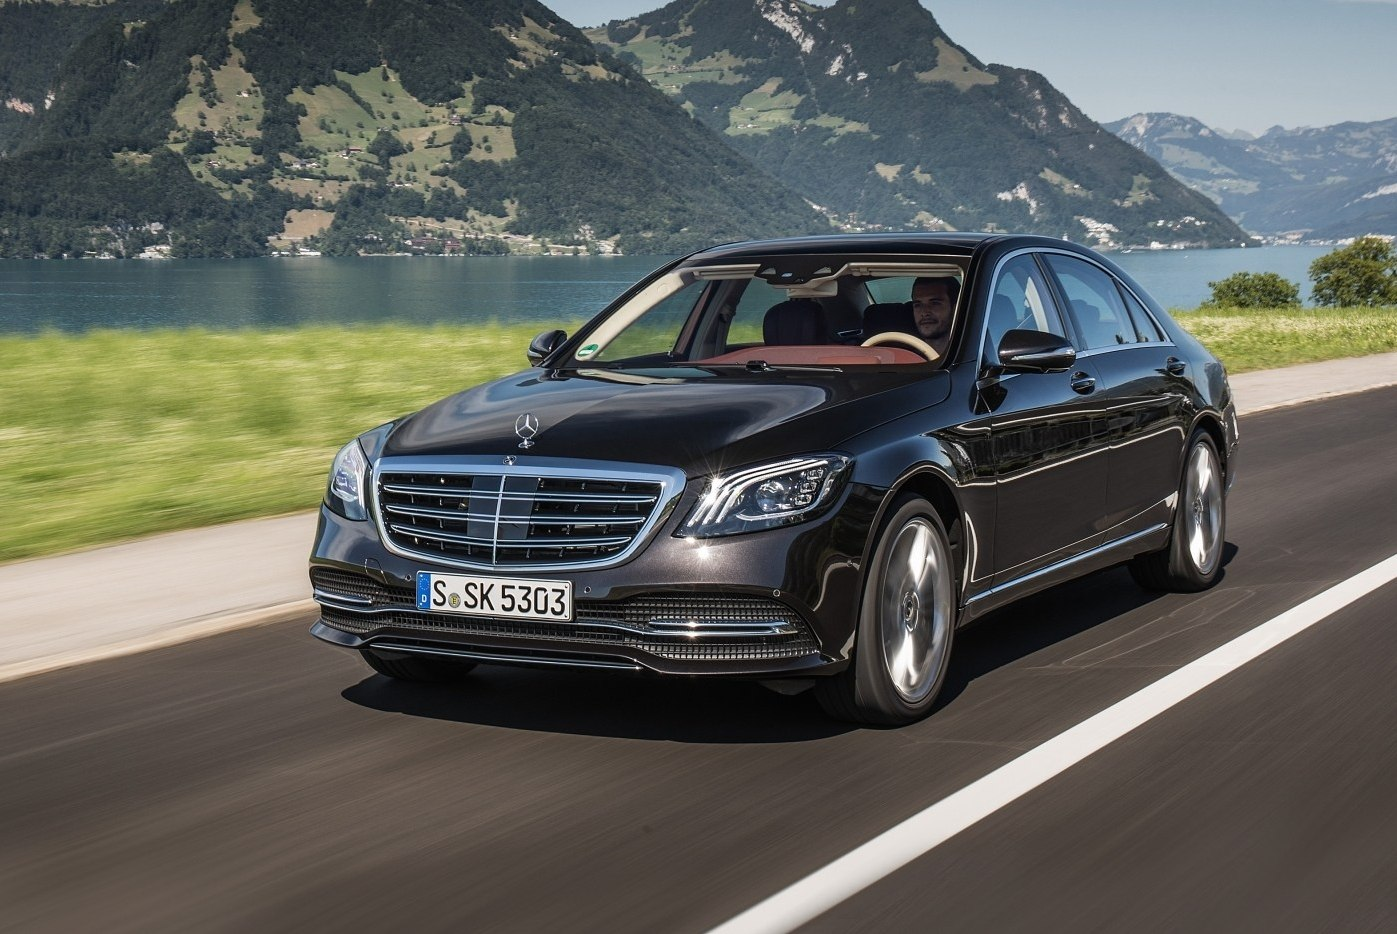 Testing the next Mercedes-Benz S-Class flagship may be in full swing, but the current generation remains as popular as ever, with the company's Sindelfingen factory pushing out its 500,000th W222 S-Class.